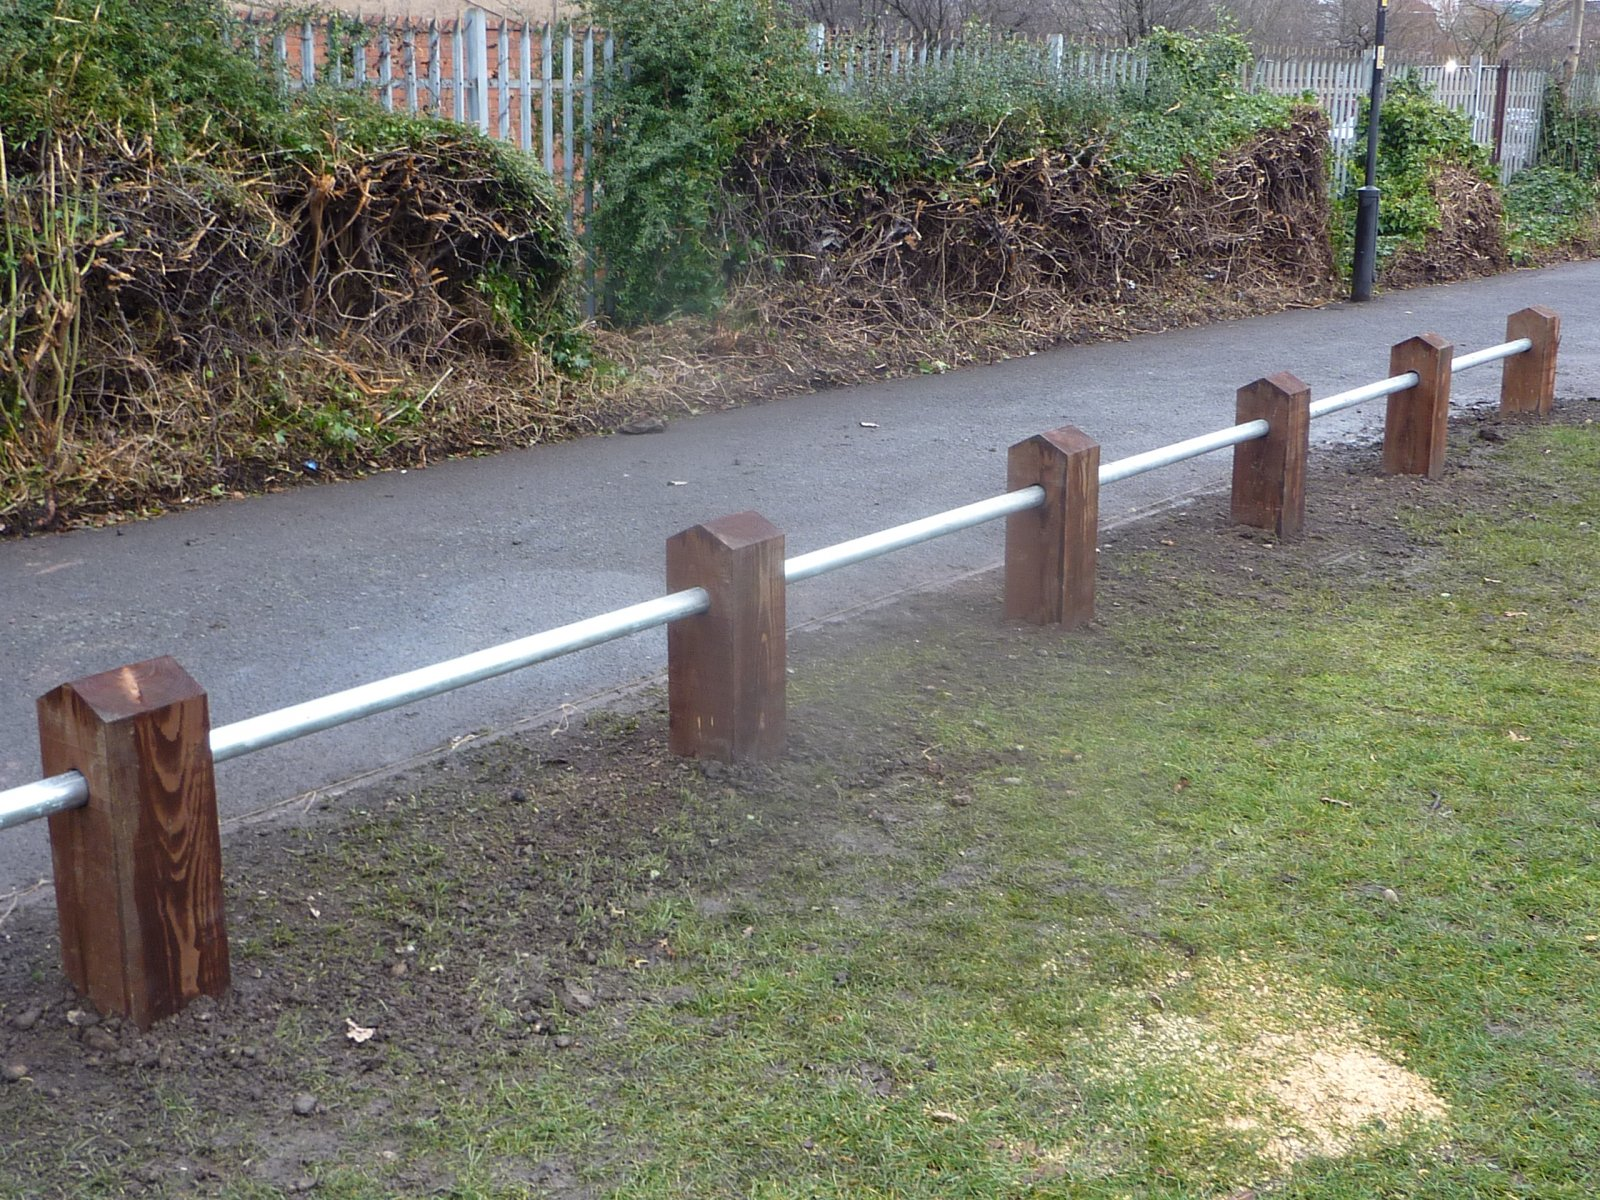 Ditch protection fencing...